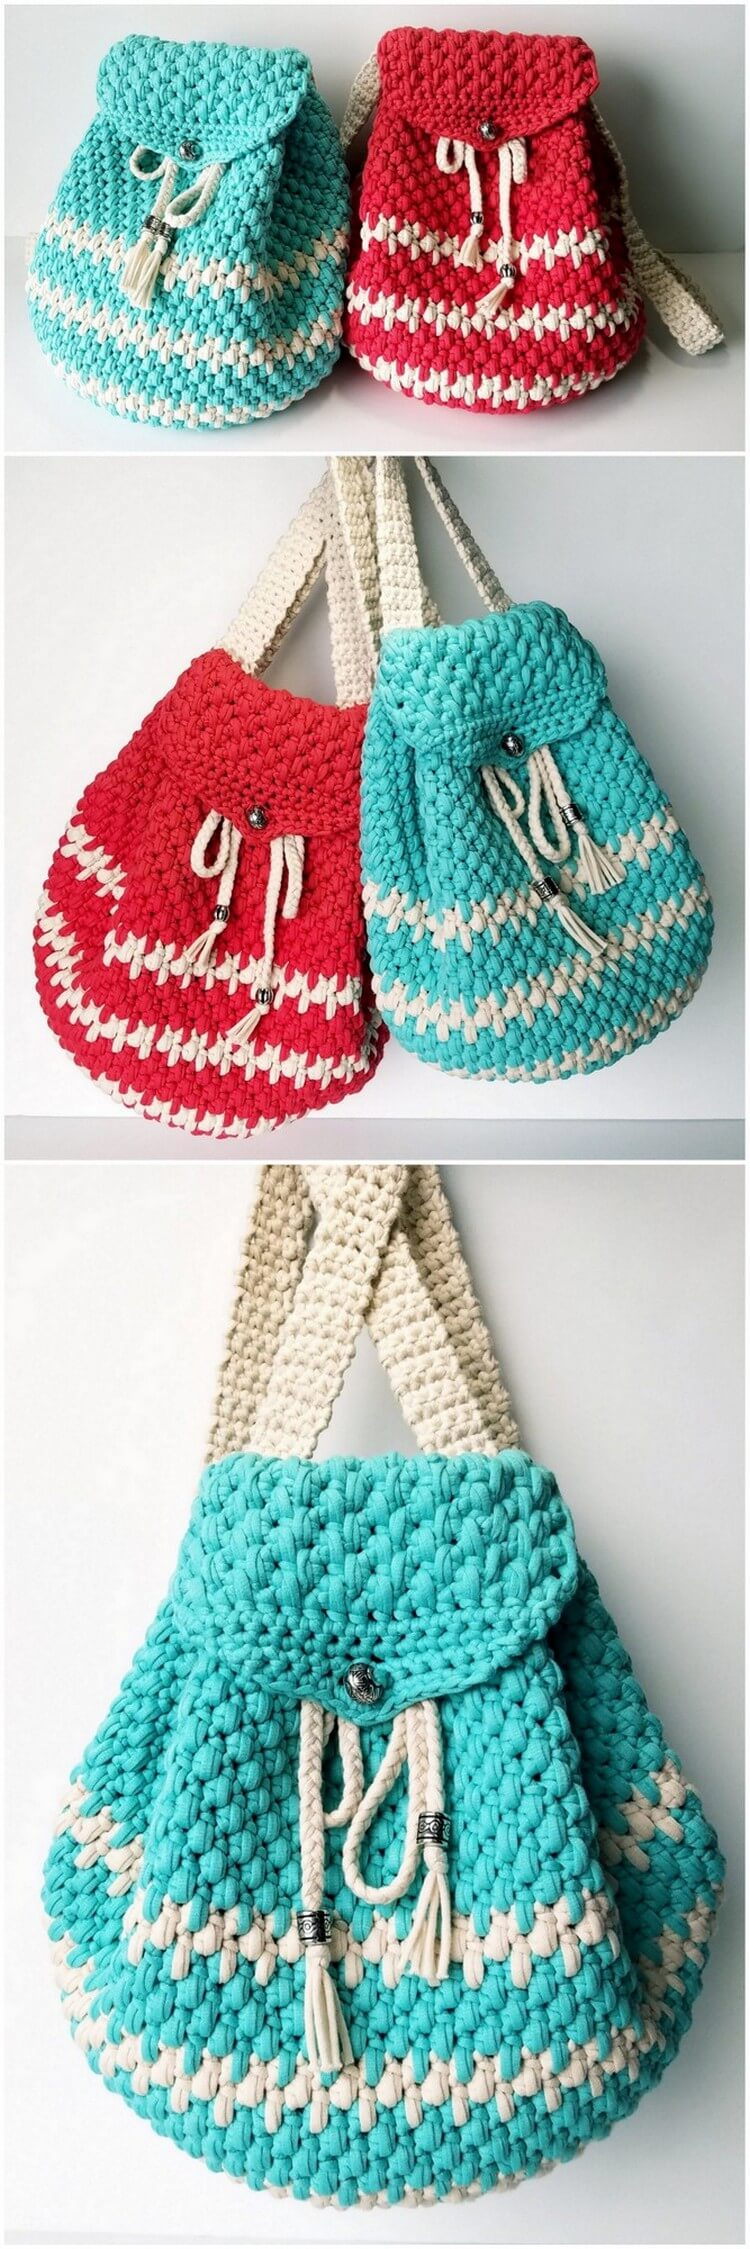 Crochet Backpack Pattern (30)